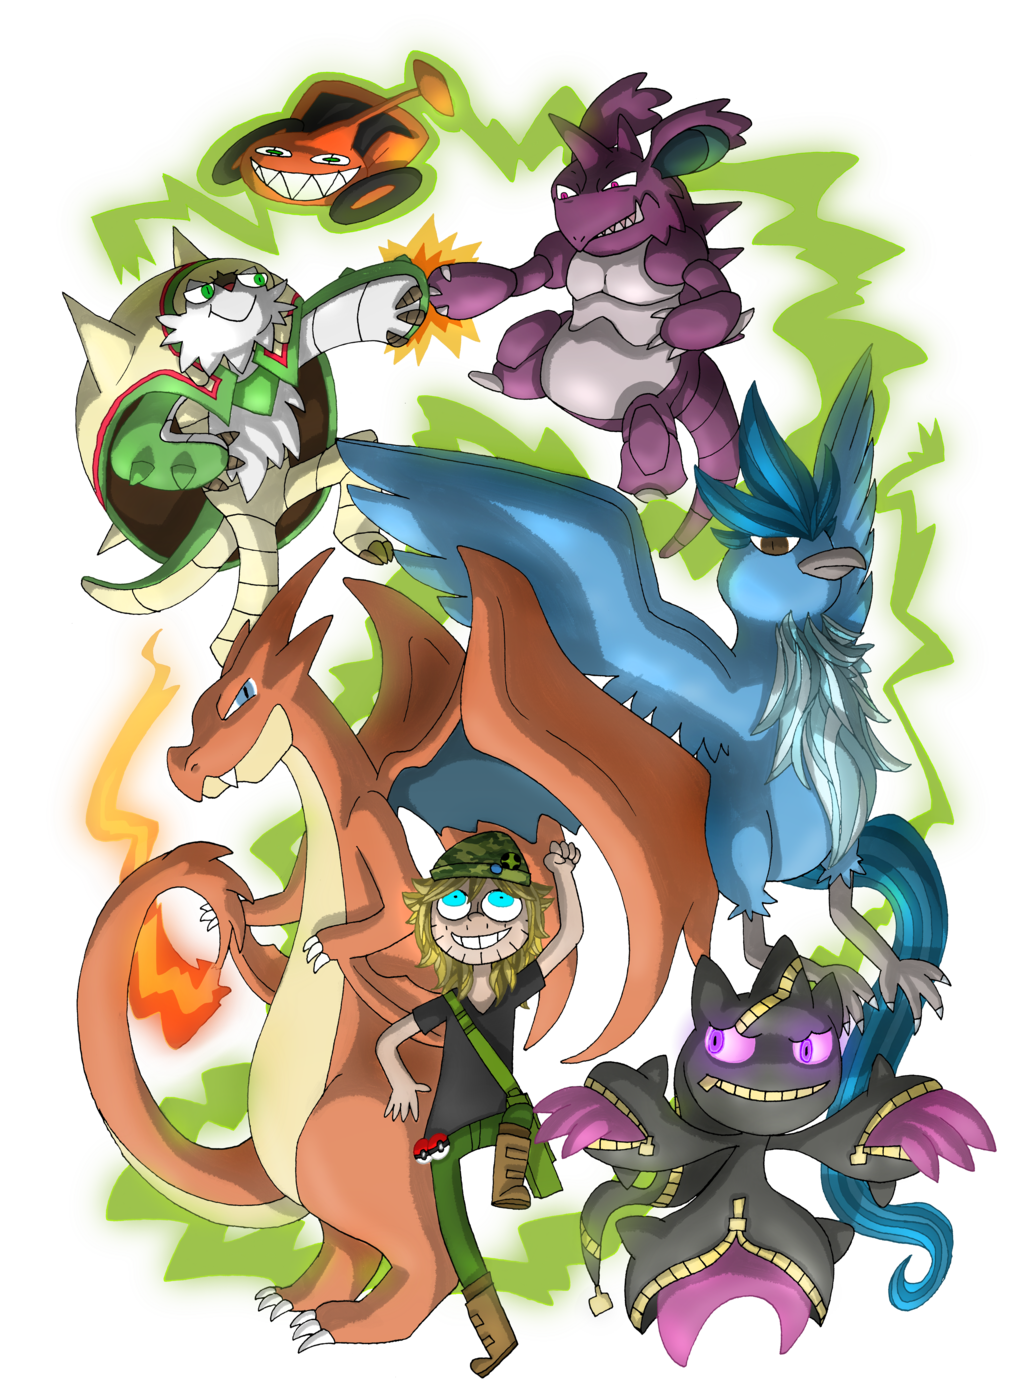 NEON POKEMON TEAM OF DOOM